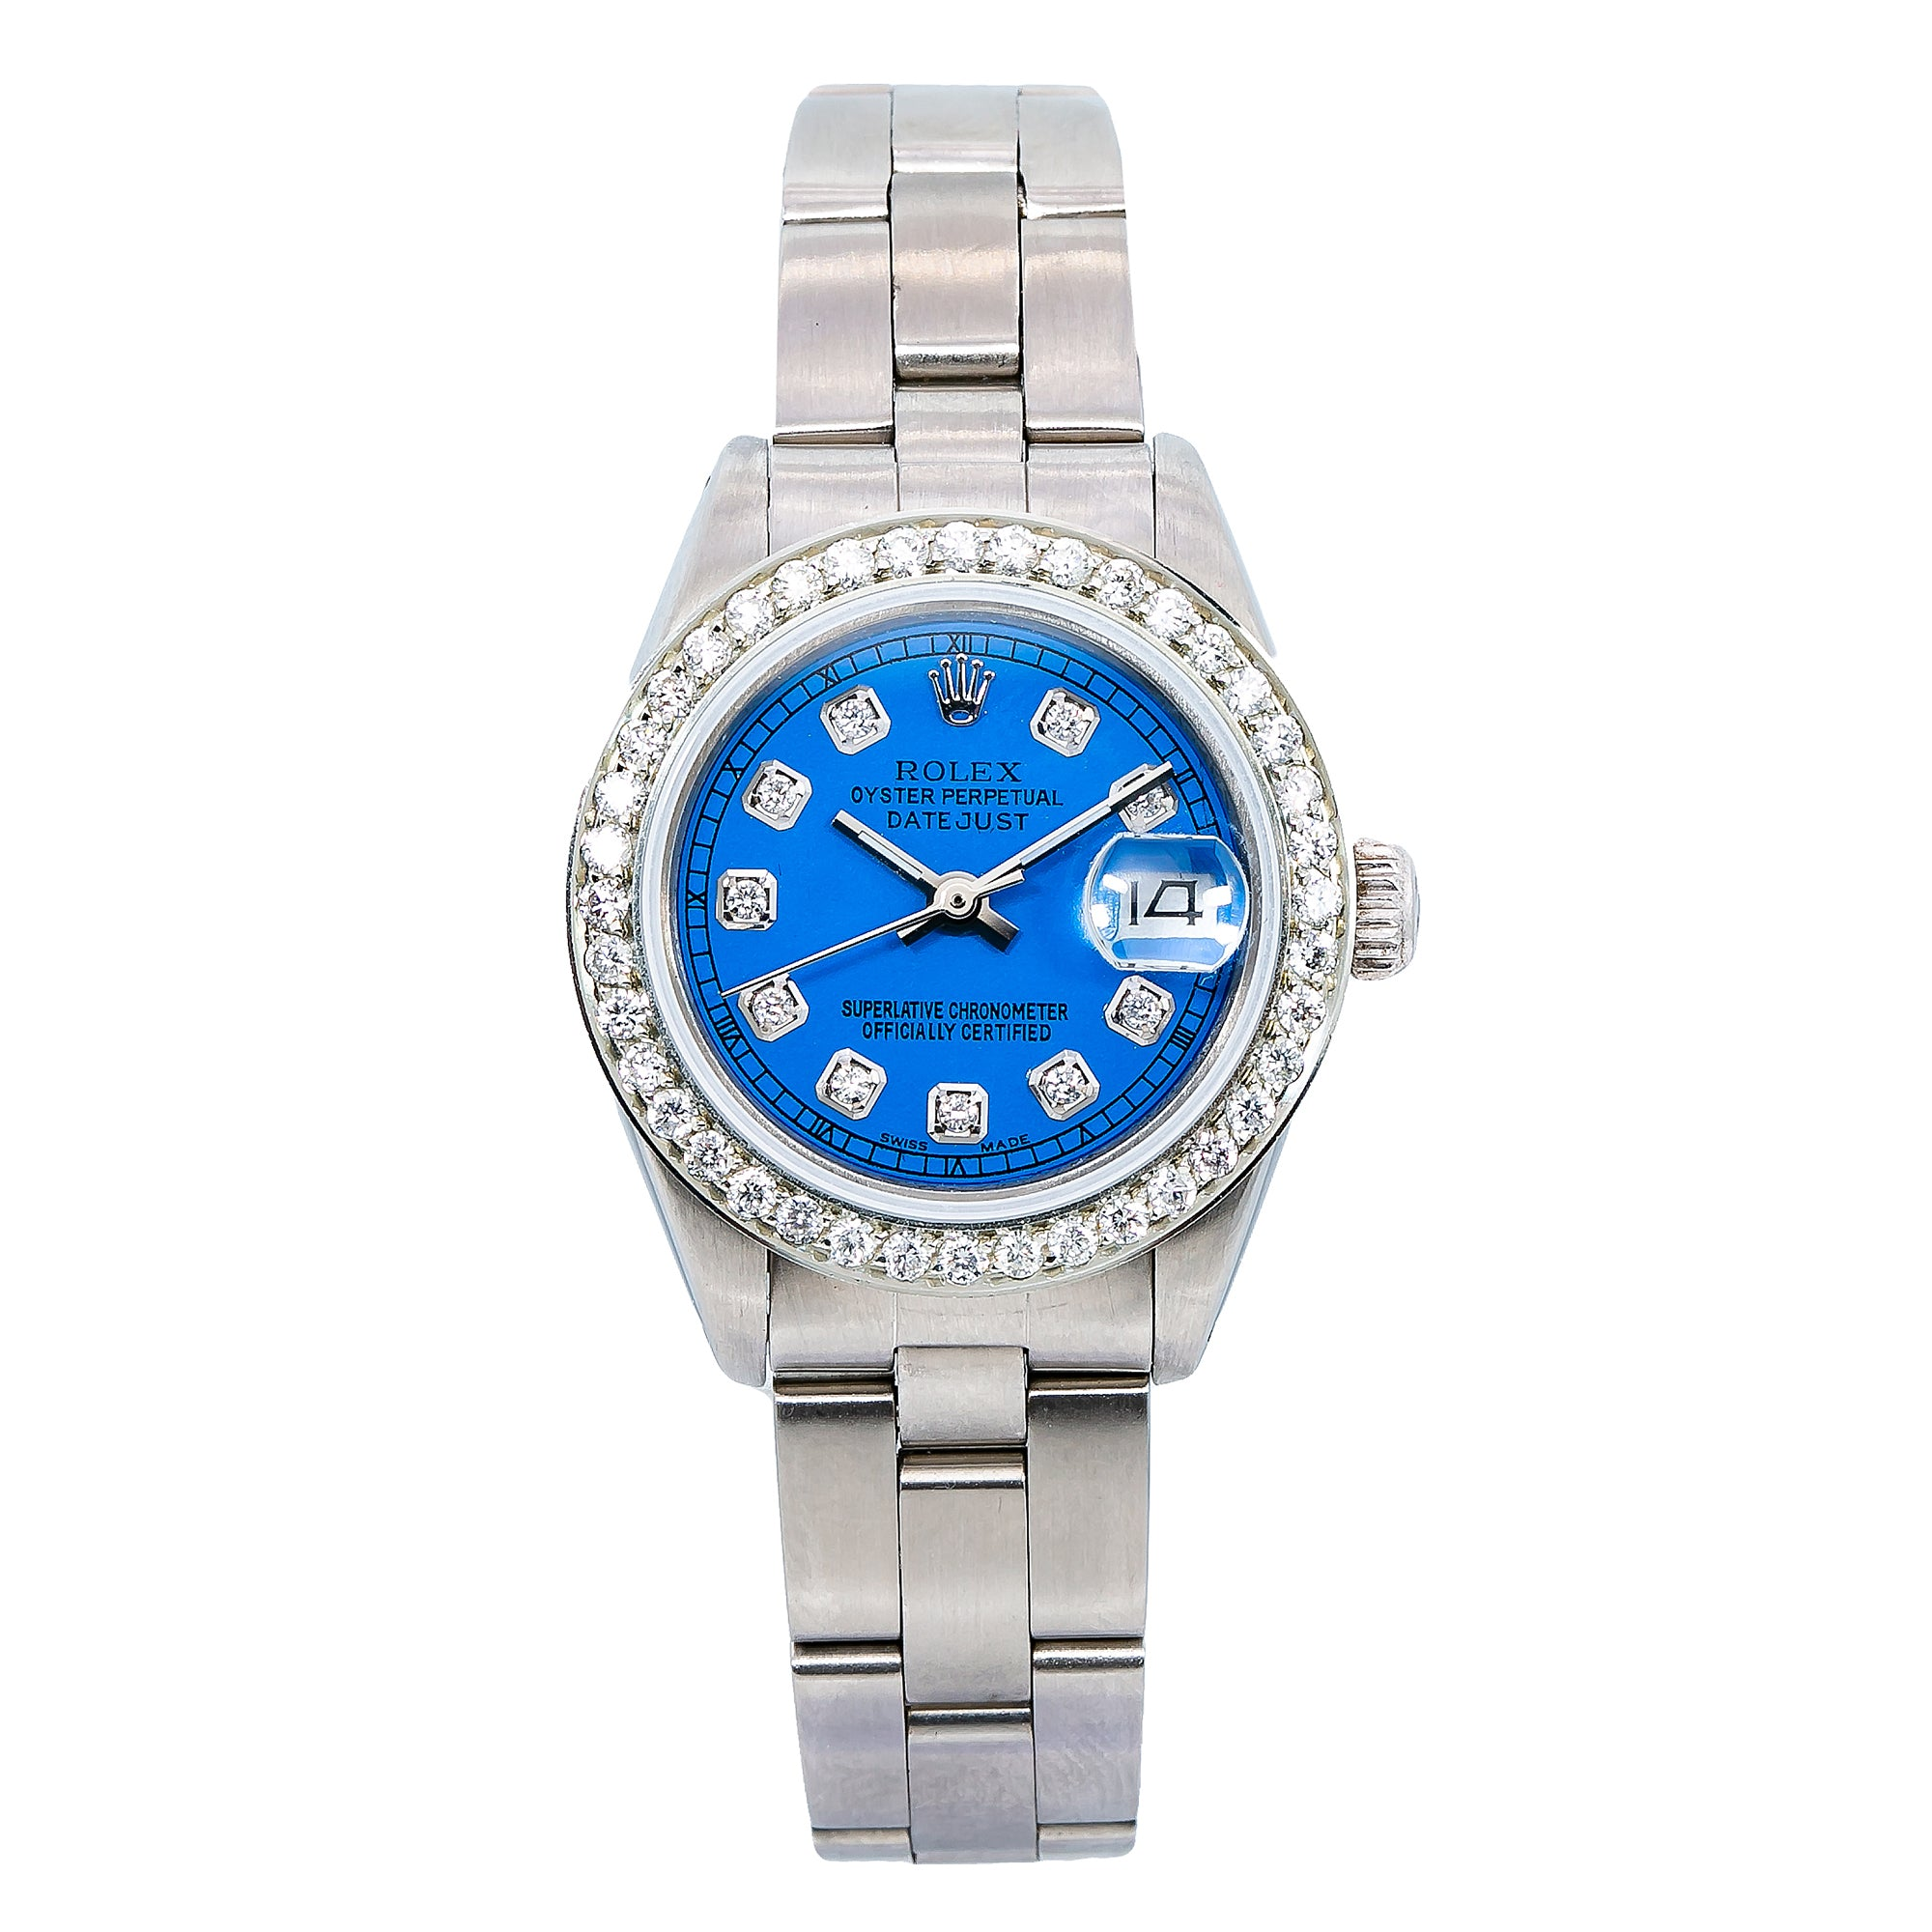 Rolex Lady-Datejust 6917 26MM Blue Diamond Dial With Stainless Steel Oyster Bracelet